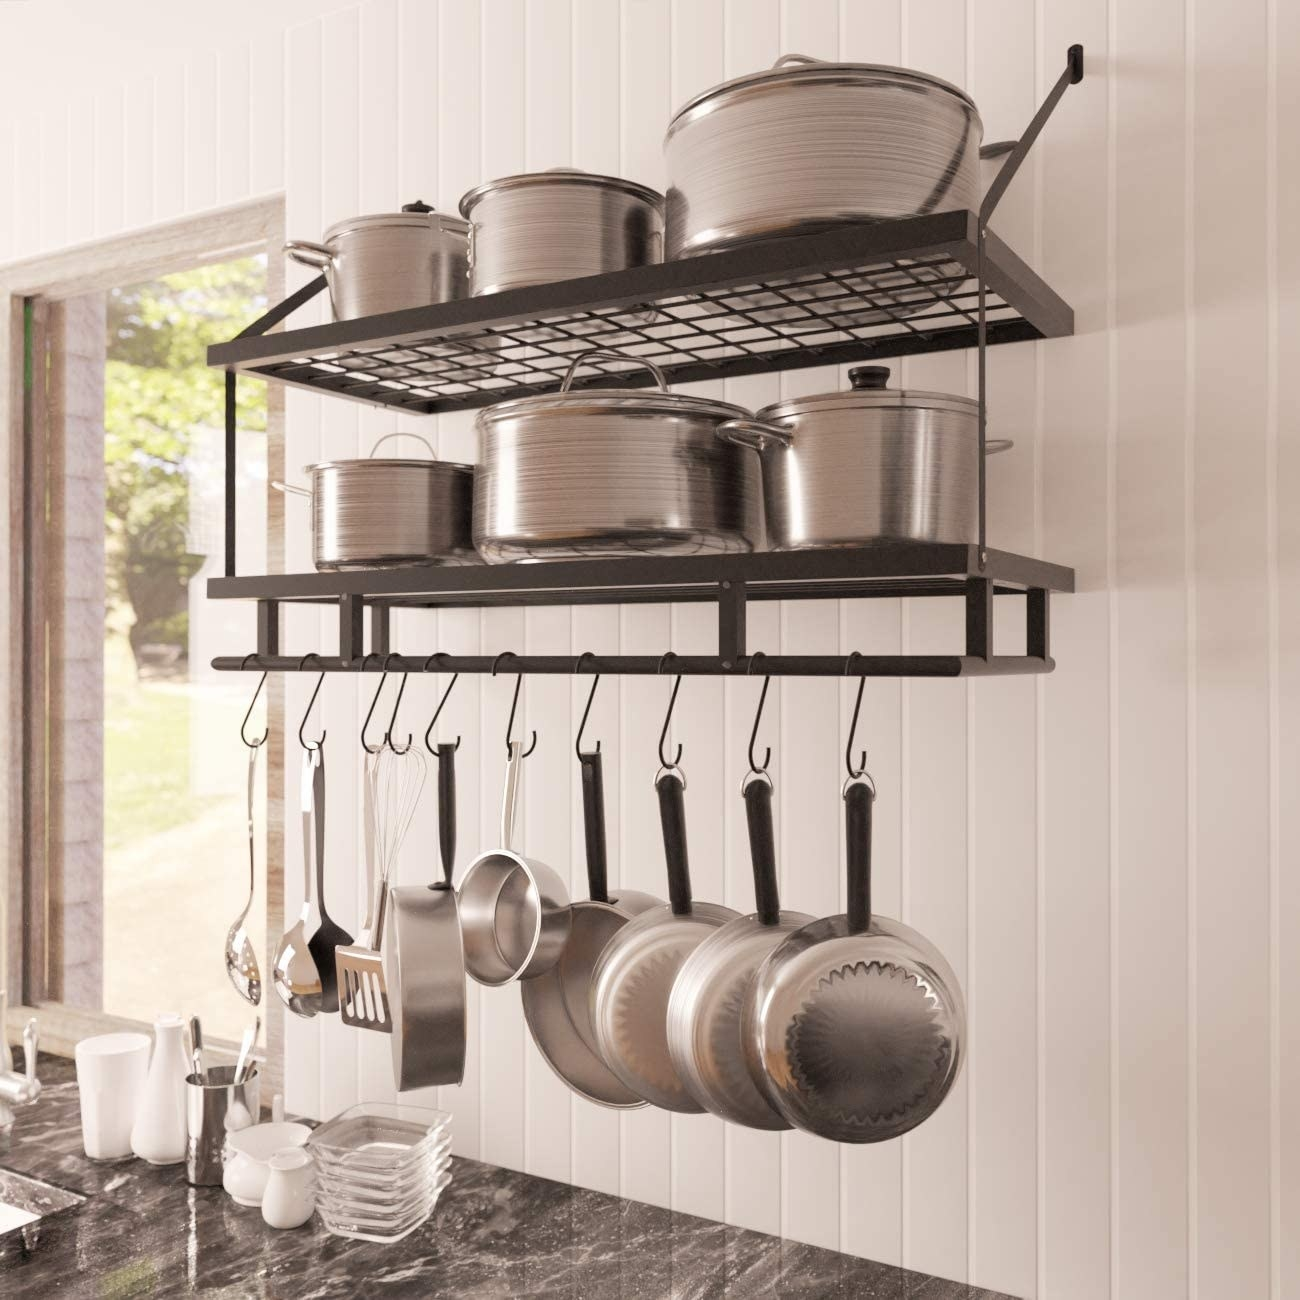 A metal shelf on a wall. with shelves for pots and hooks with pans hanging off of it